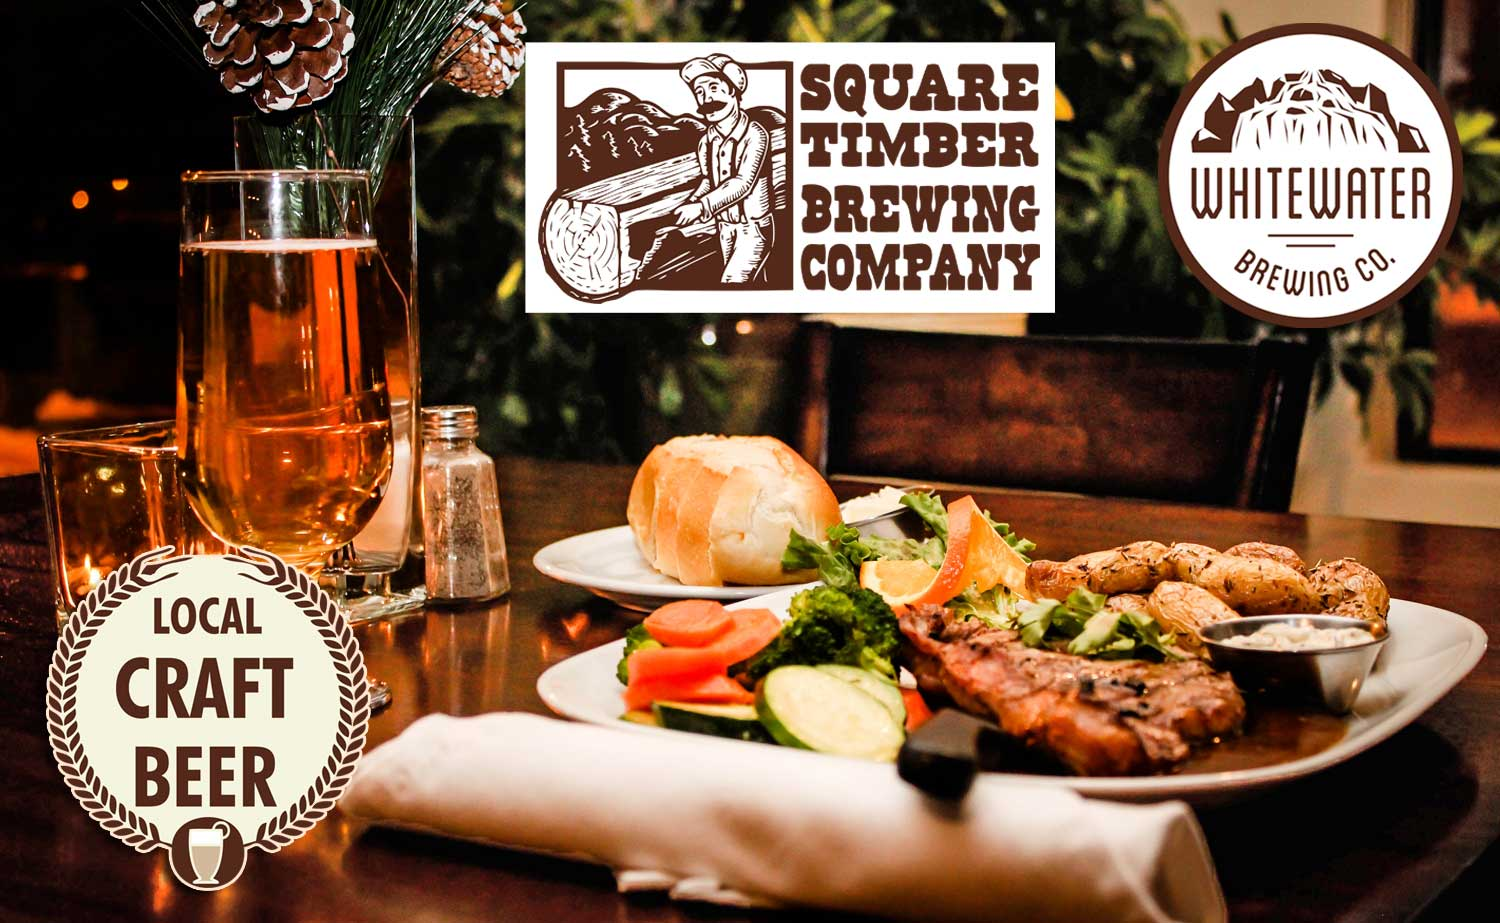 Try our Local Craft Beer